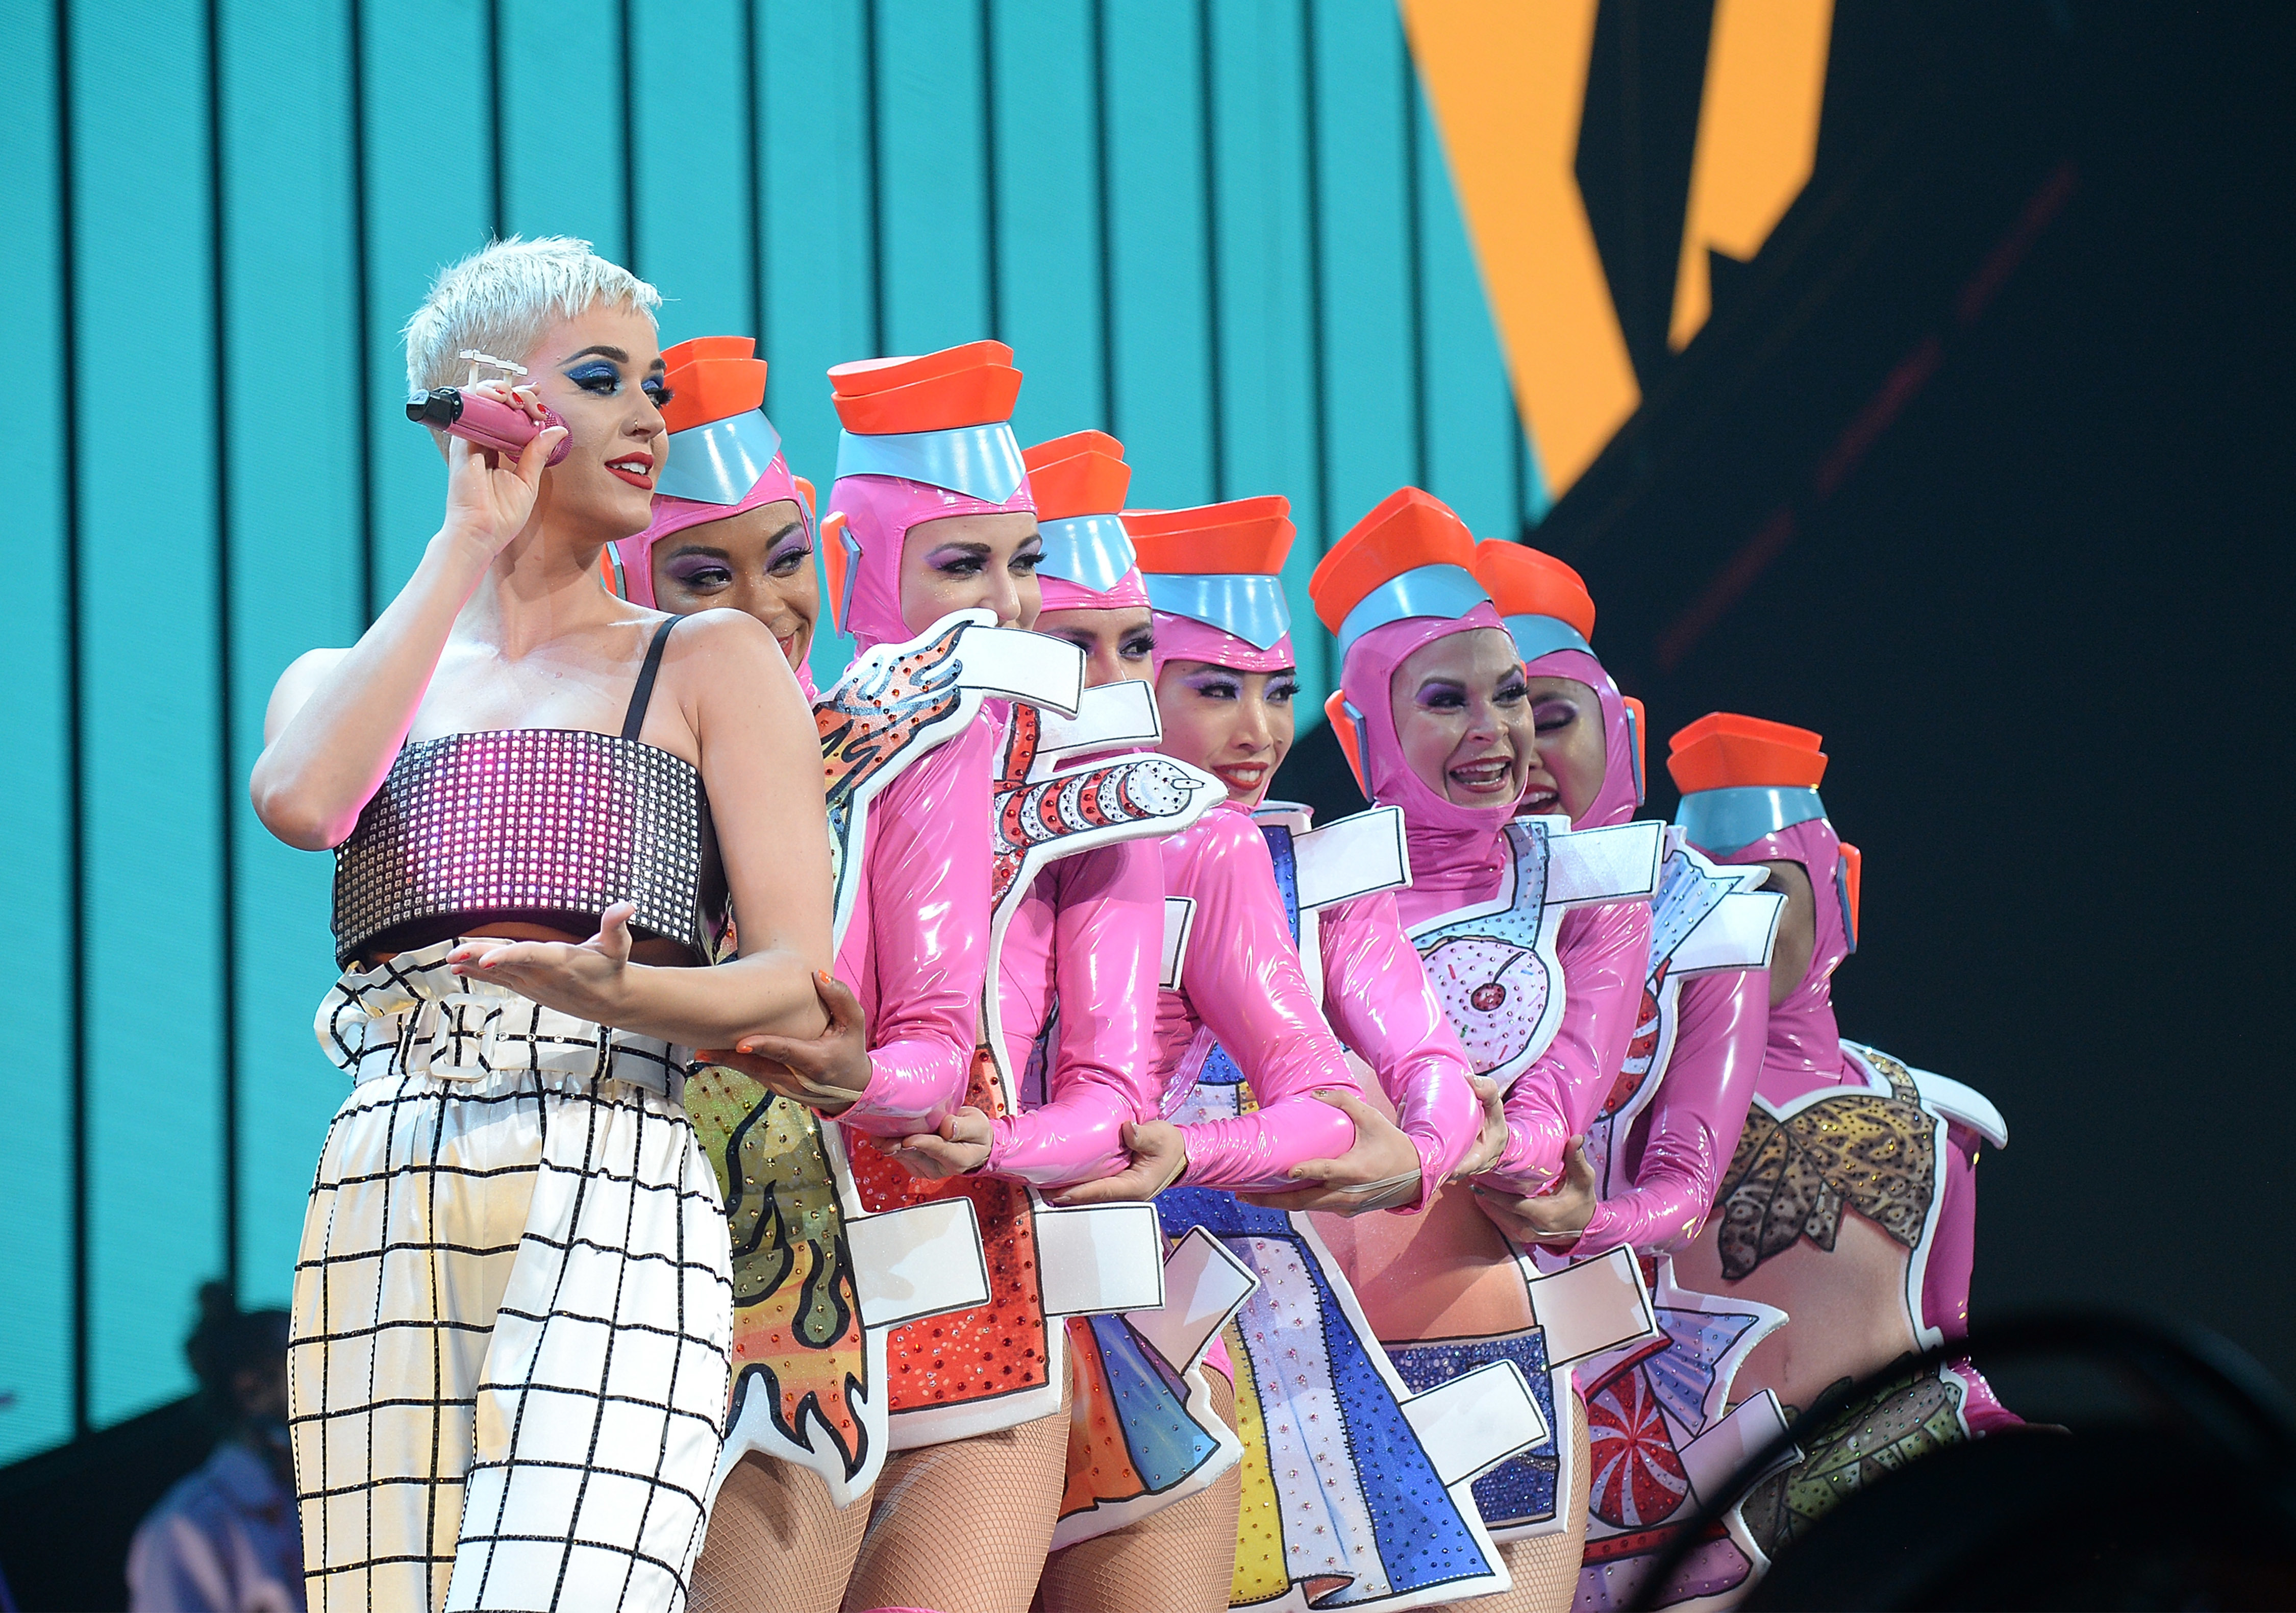 """Katy Perry performs onstage during her """"Witness: The Tour"""" tour opener at Bell Centre in Montreal on Sept. 19, 2017."""